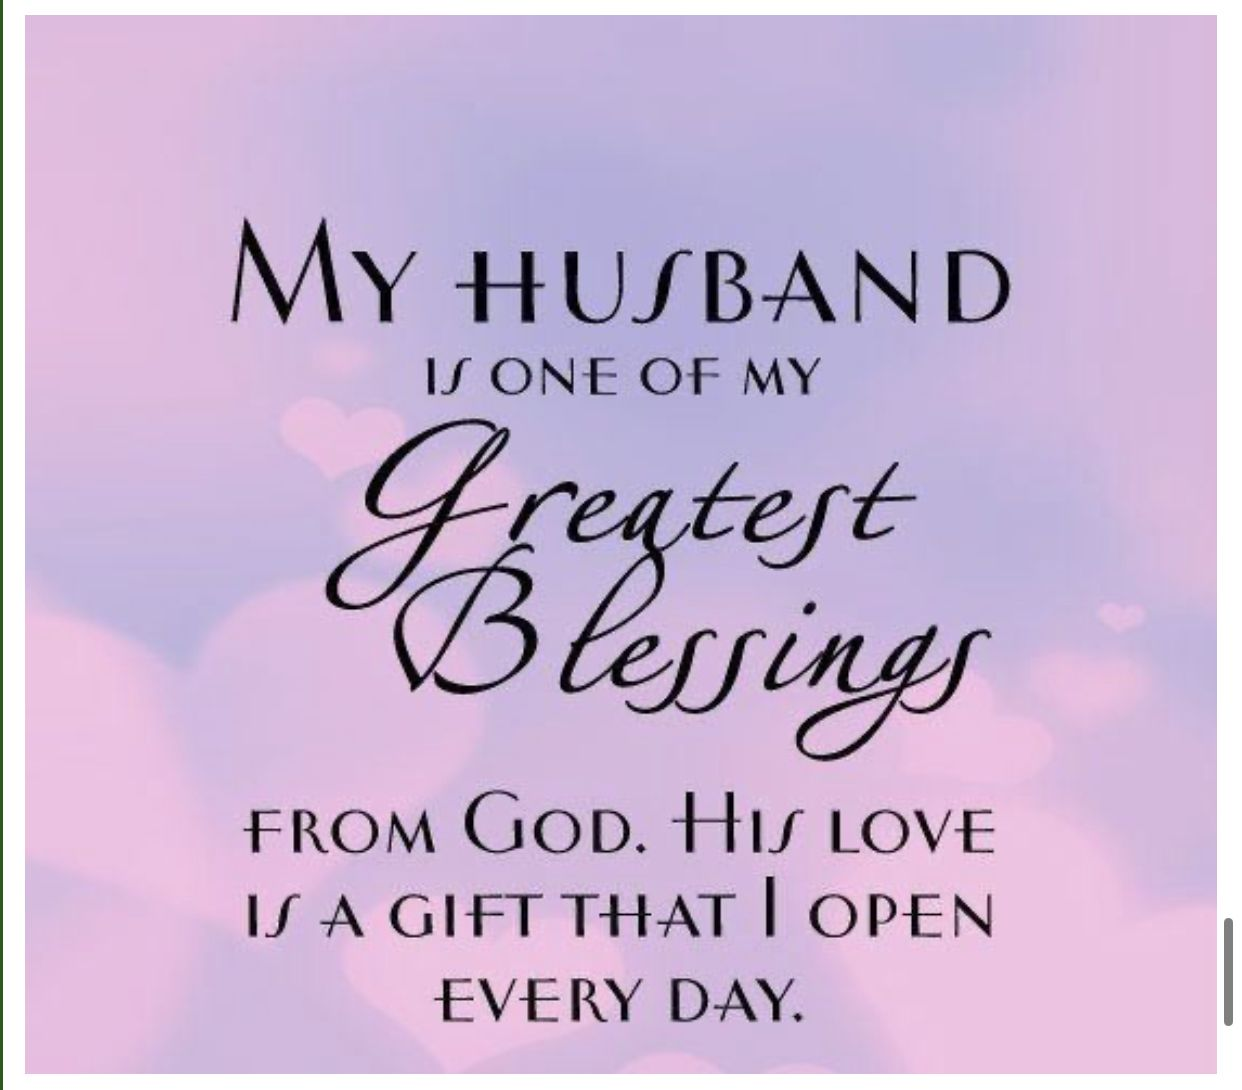 Pin By Ht Brown On Wisdom Quotes In 2020 Valentine Quotes For Husband Valentines Day Quotes For Husband Happy Valentine Day Quotes